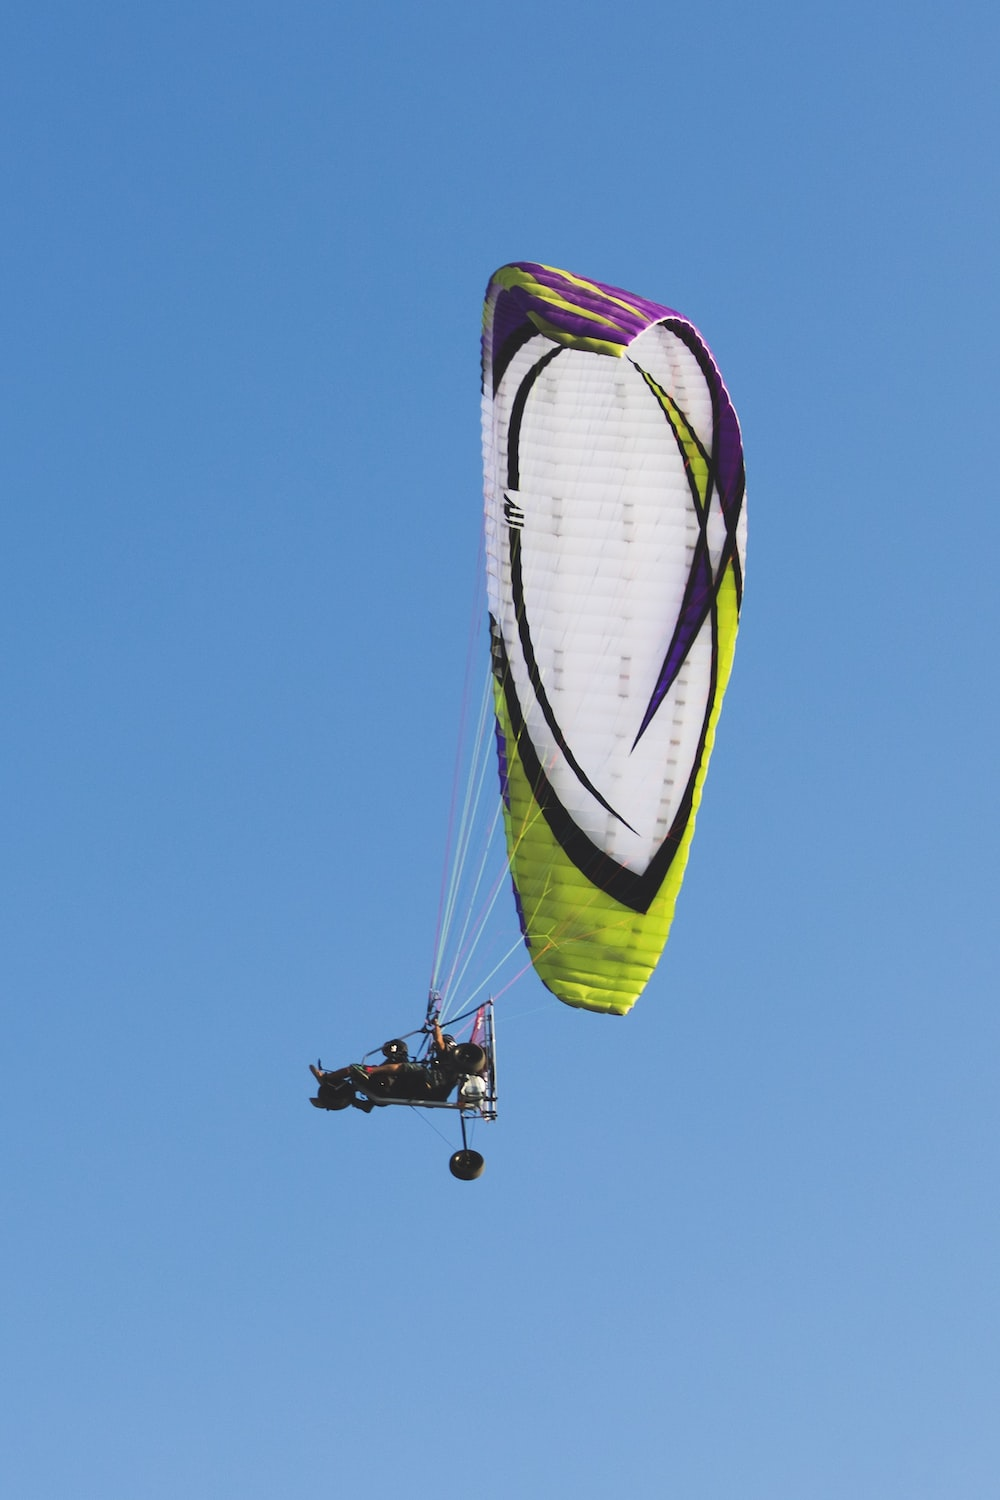 white and green vehicle with parachute flying during daytime